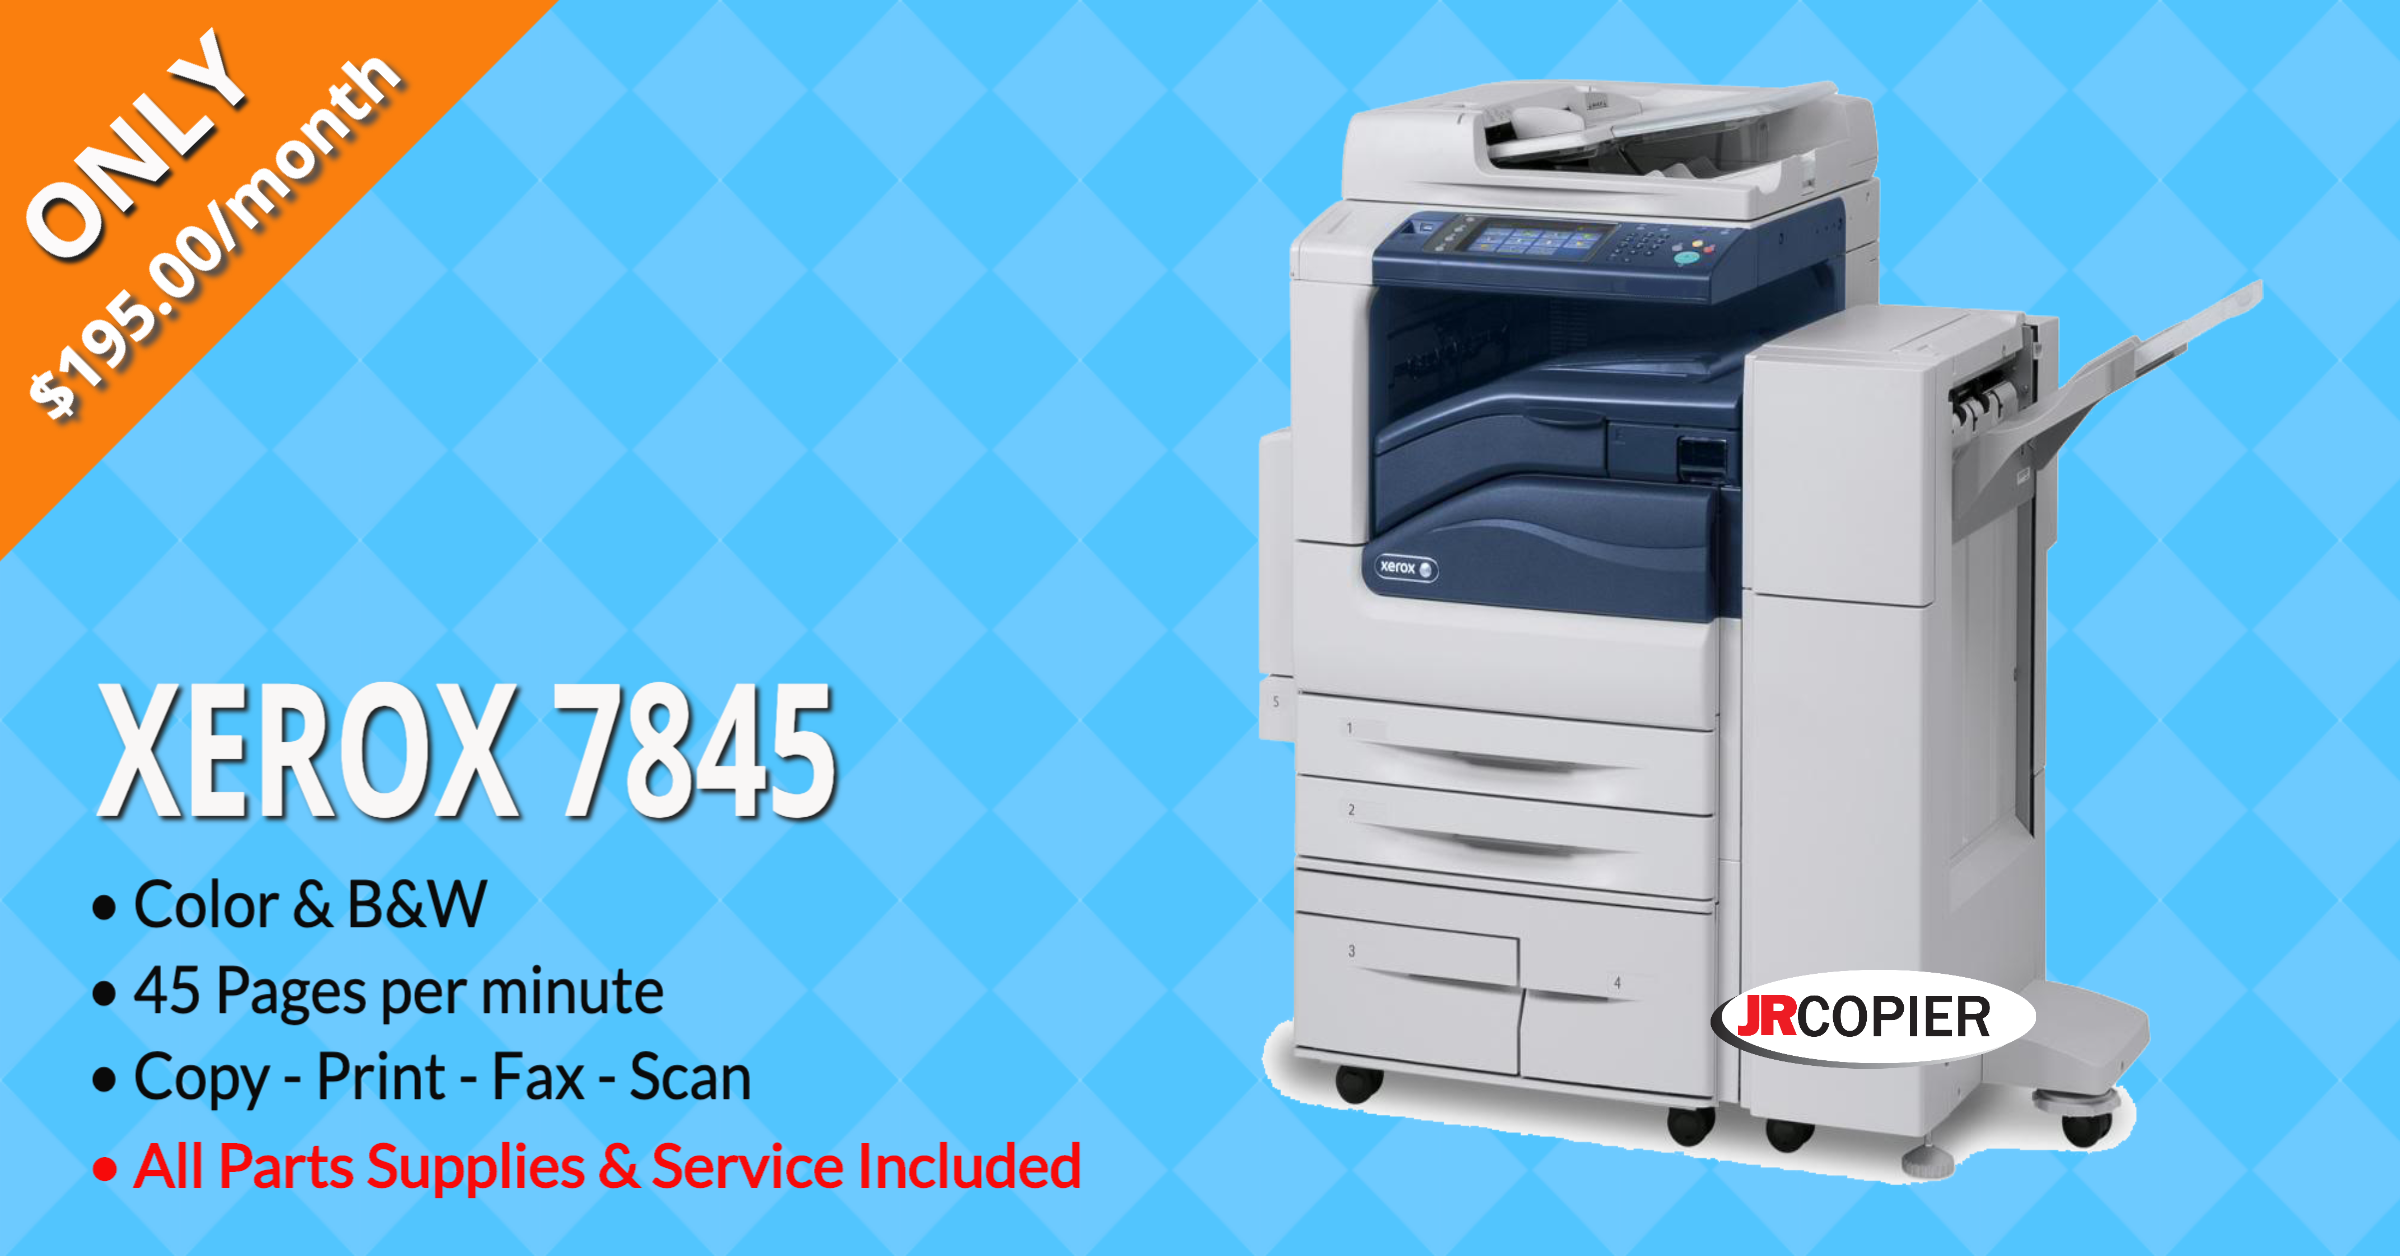 Printer Leasing Company 56093